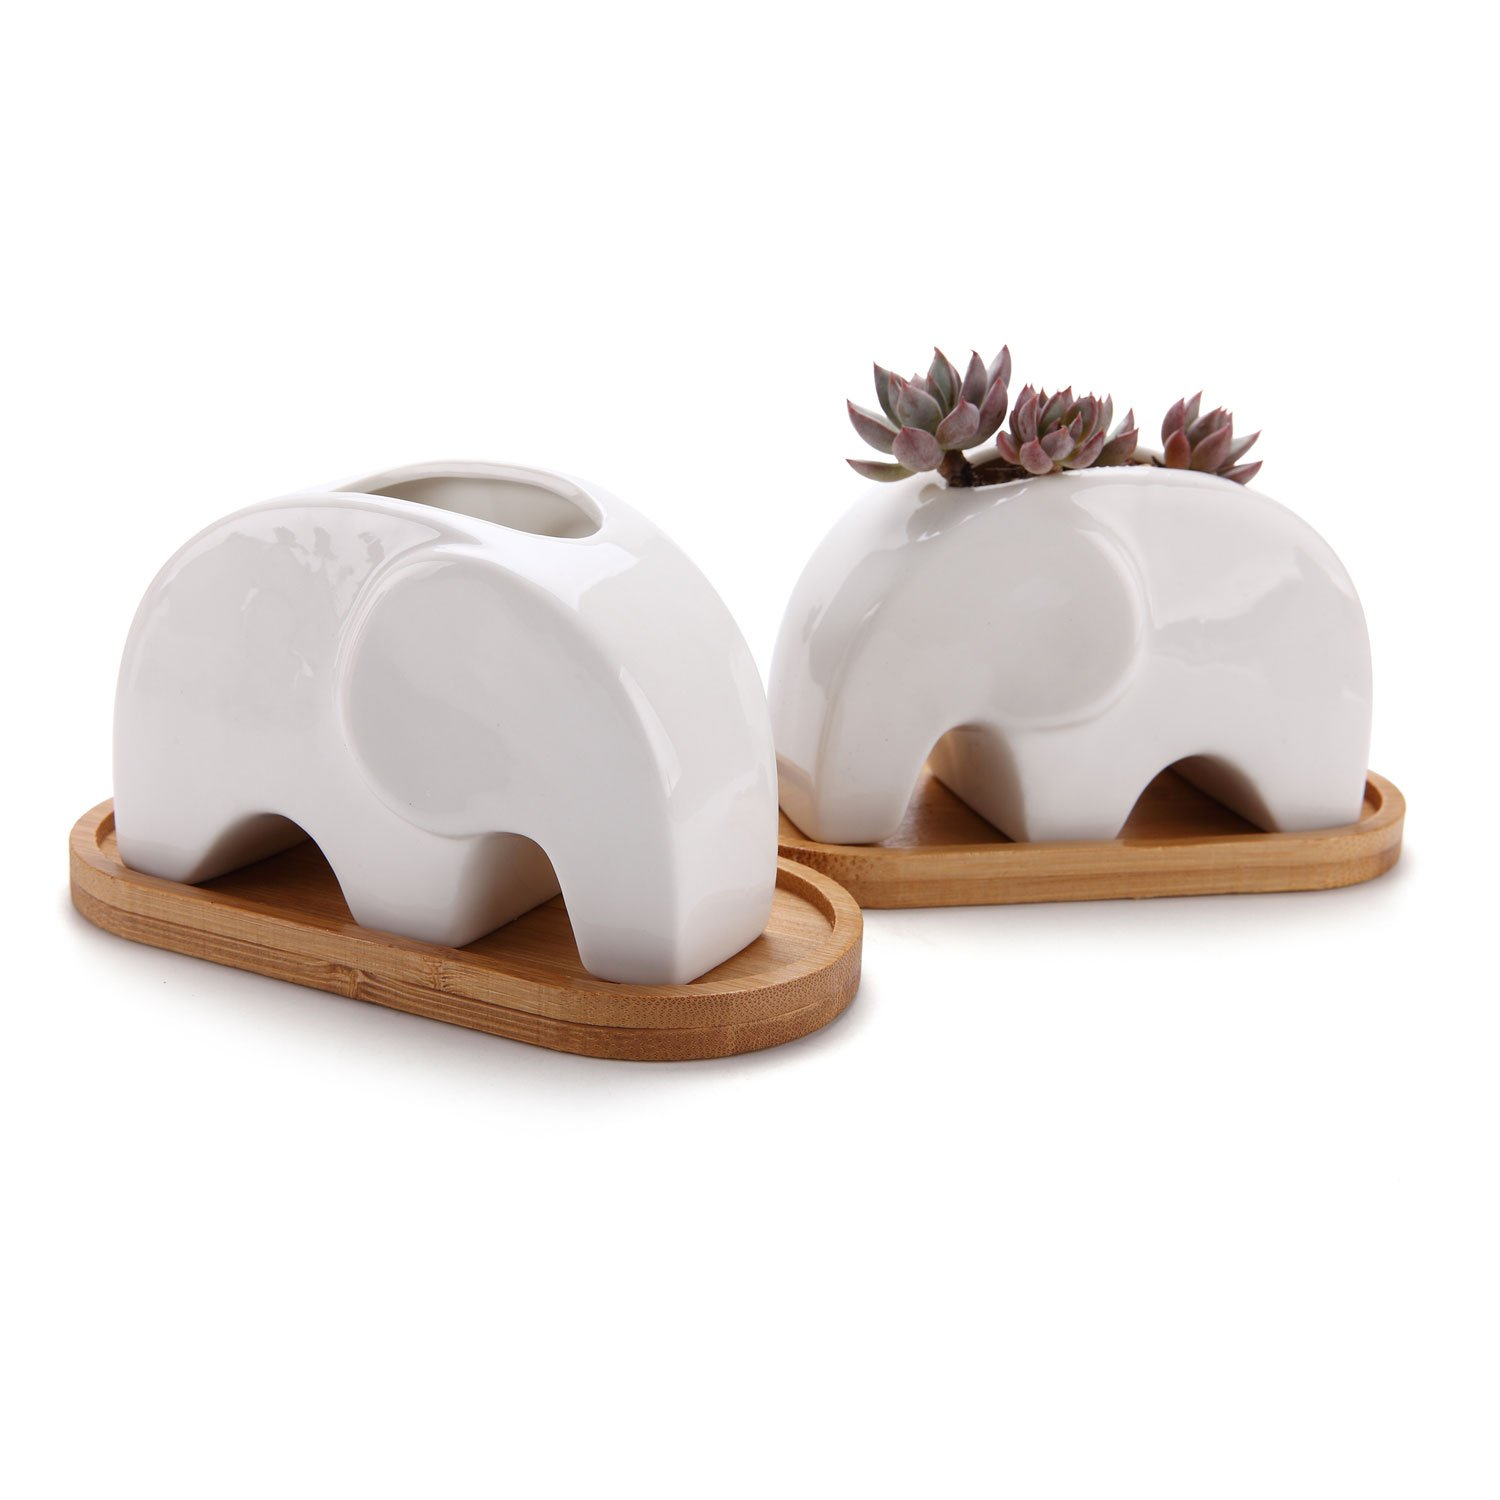 T4U Succulent Plant Pot Cactus Ceramic Planter with Bamboo Tray Pack of 2-4.8'' Elephant, Small Container White Animal Window Box Decorative Ornament Office Desktop Wedding Birthday by T4U (Image #1)